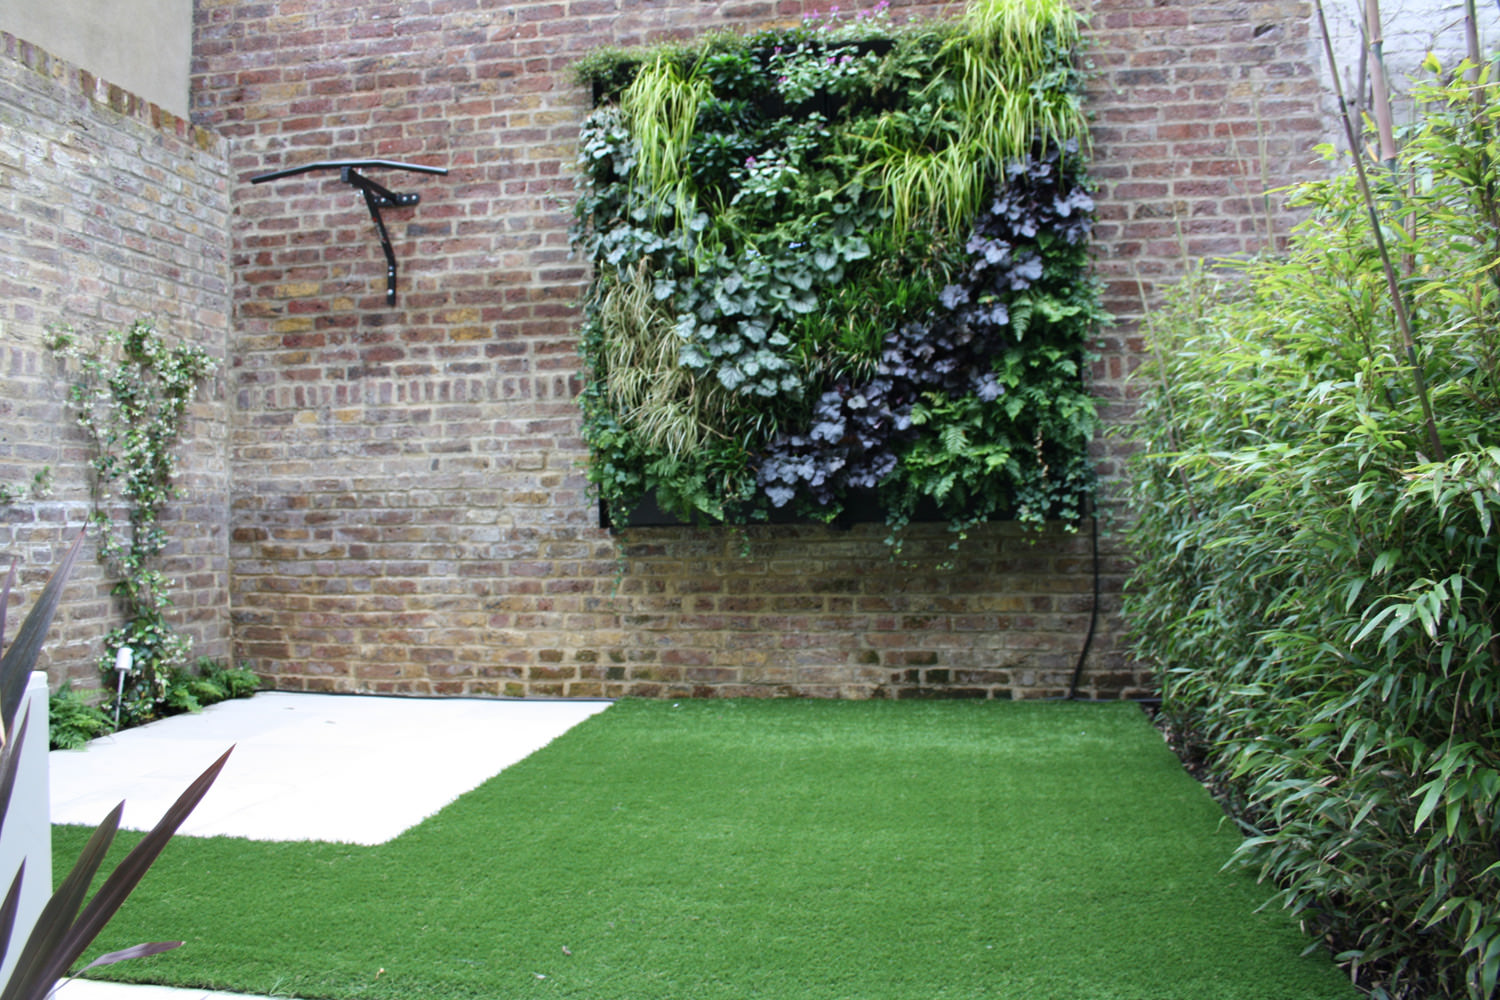 Top 10 london garden designs garden club london for Small garden design